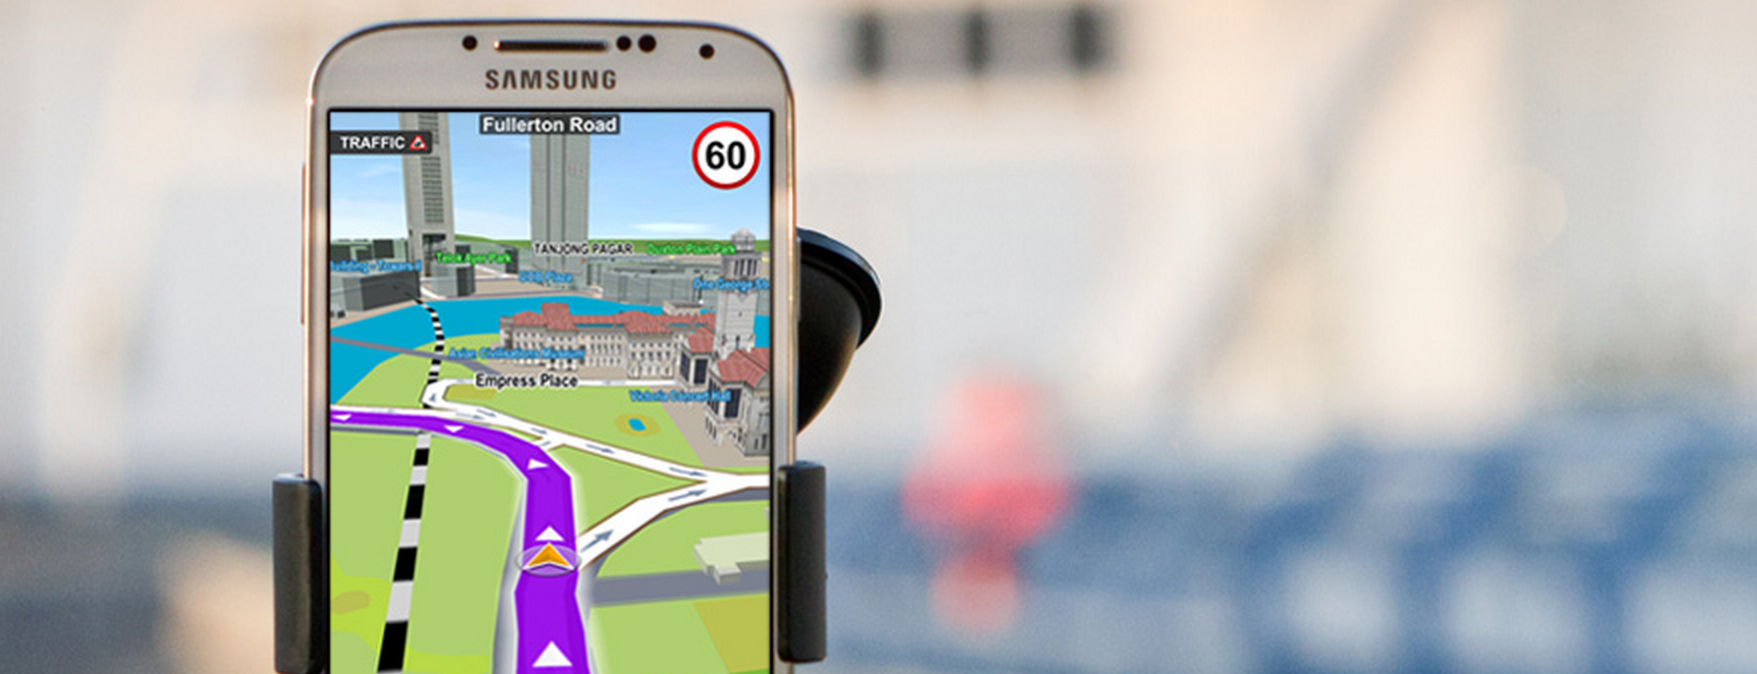 Be a Smart Driver with Sygic GPS Navigation